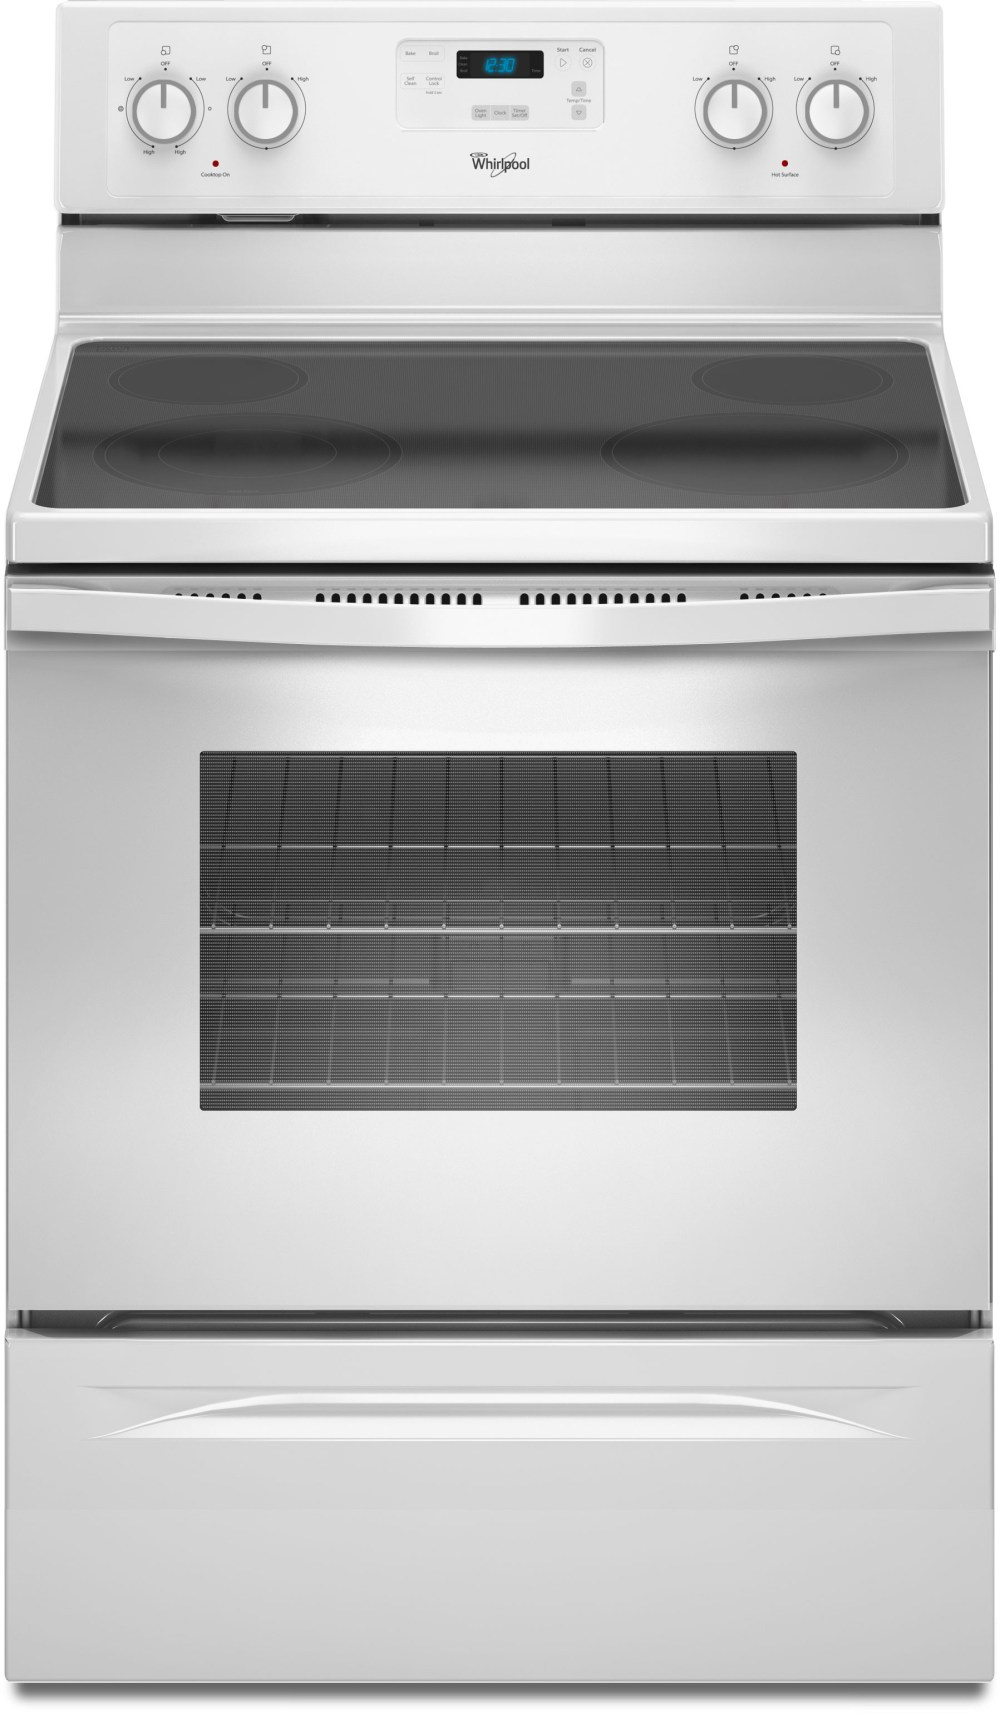 medium resolution of whirlpool wfe510s0aw 30 inch freestanding electric range with 4 whirlpool dryer wiring diagram whirlpool electric range wiring diagram wfe510s0aw